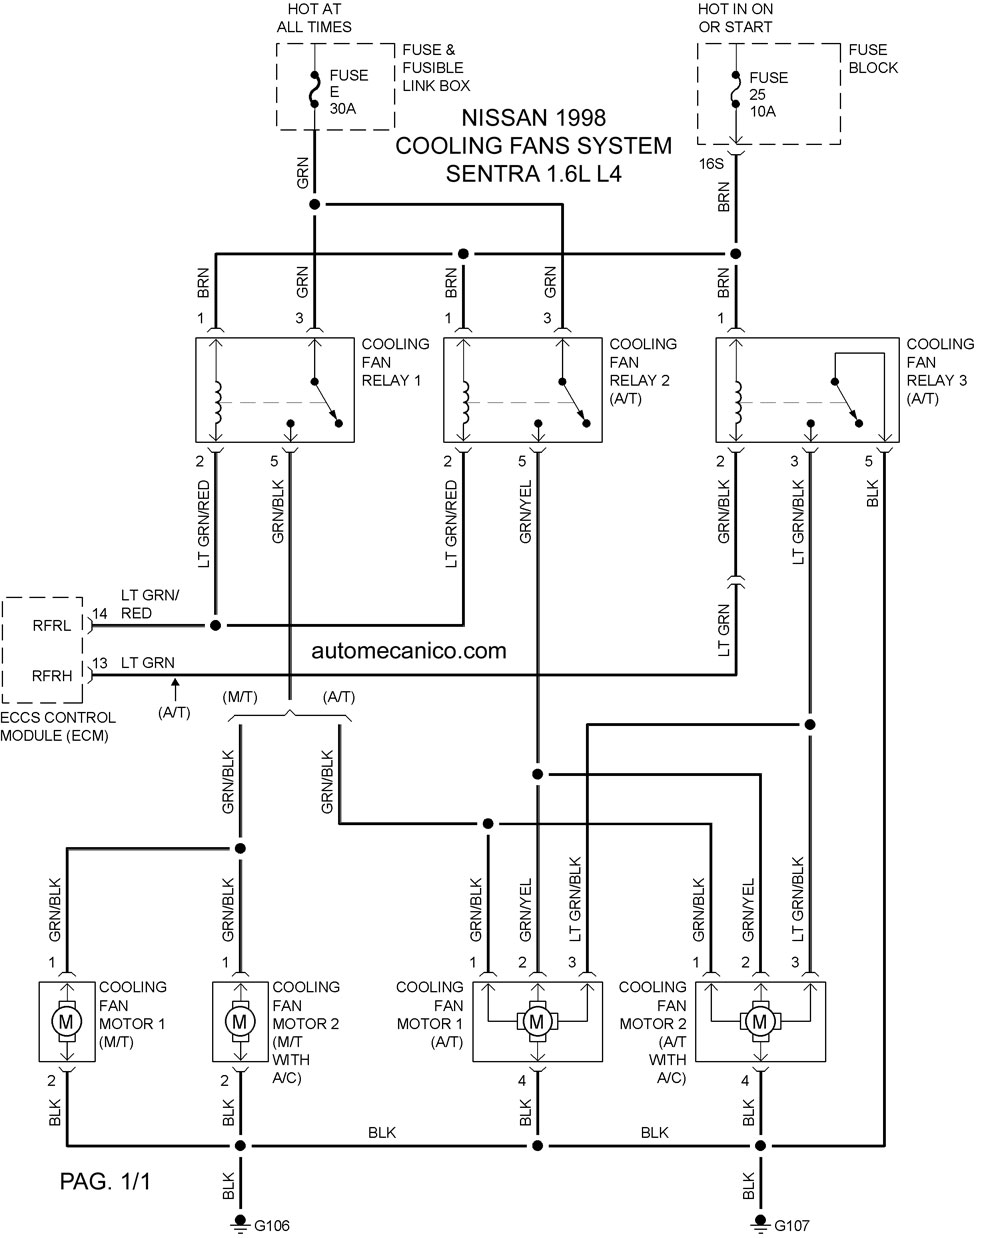 sentracf9816001 Nissan Quest Wiring Diagram on